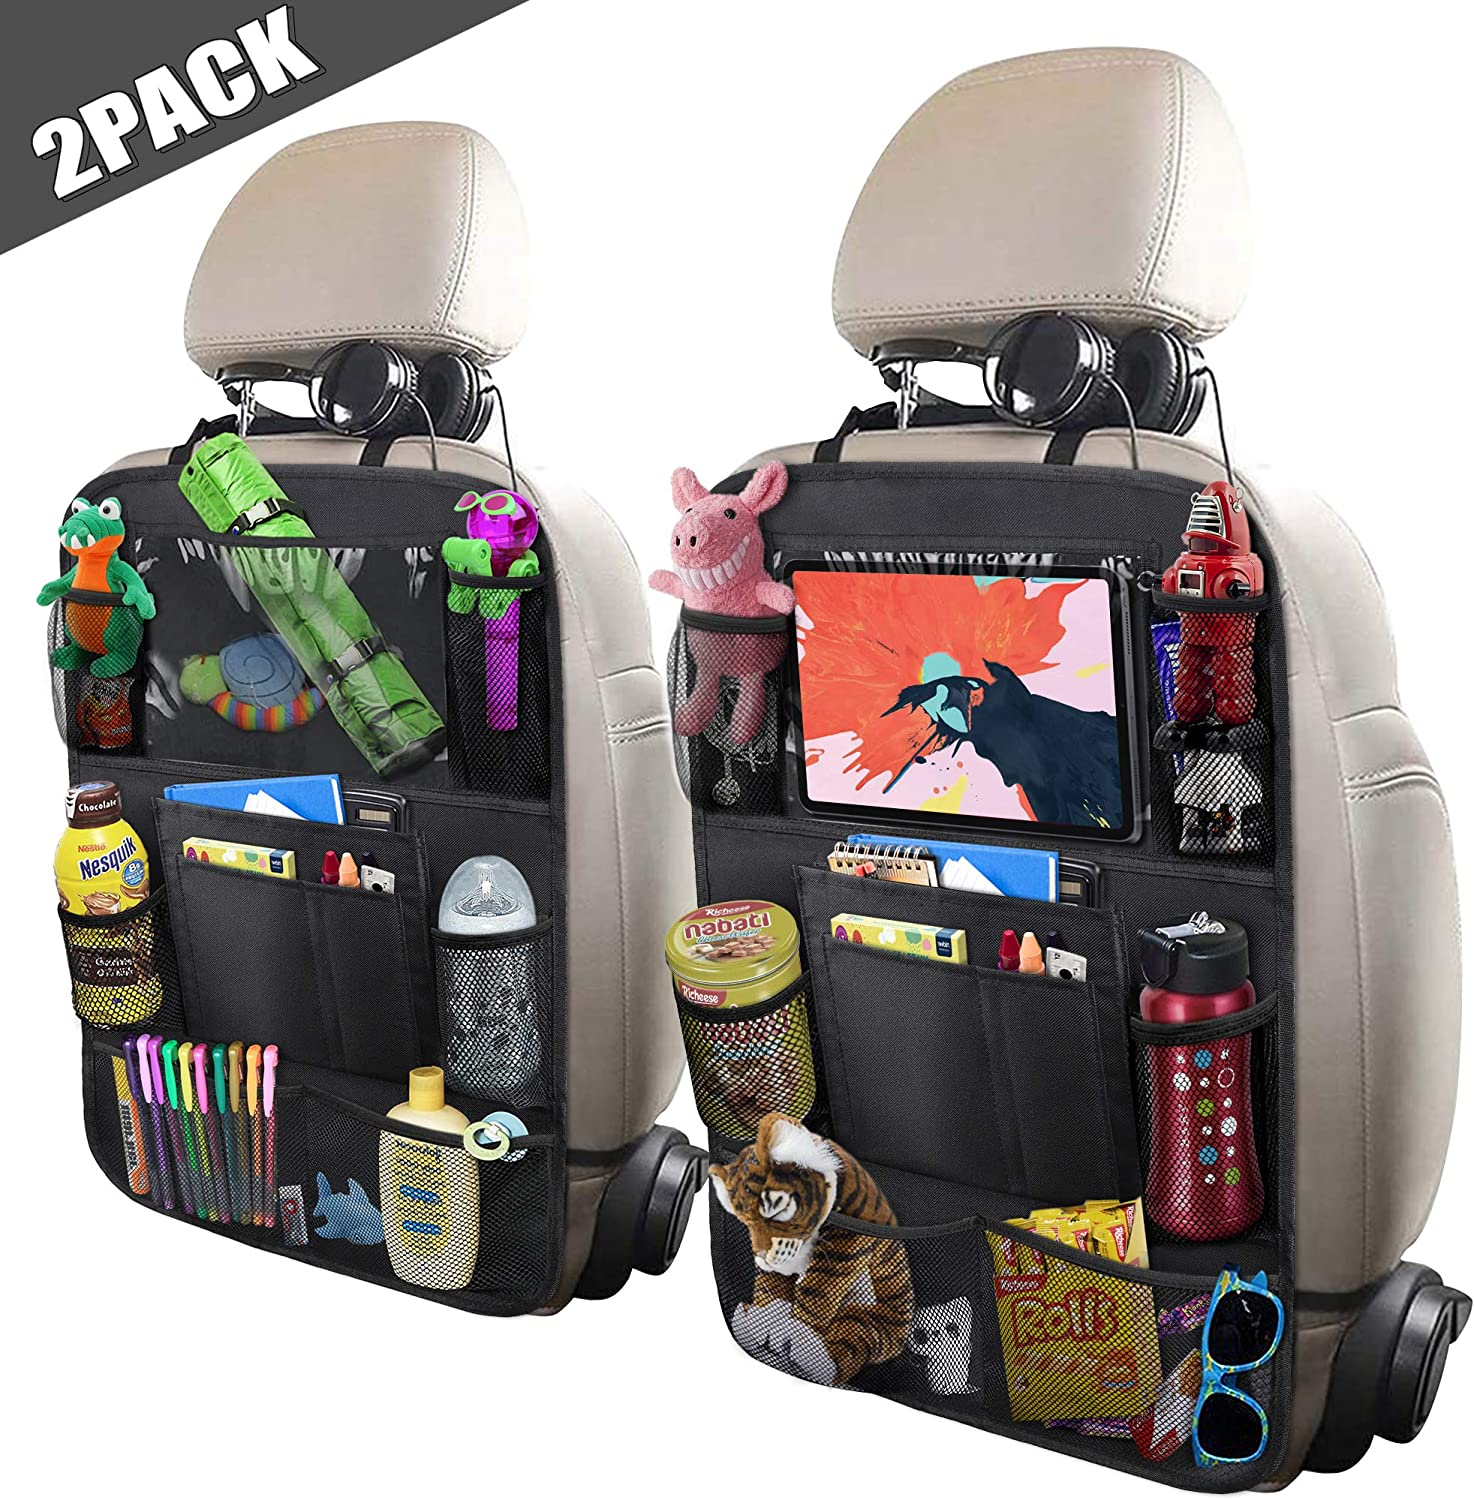 Car Back Seat Organizer Kick Mat Car Backseat Protector with Touch Screen Tablet Holder Storage Pockets for Toys Book Bottle Drinks Kids Baby Toddler Travel Accessories